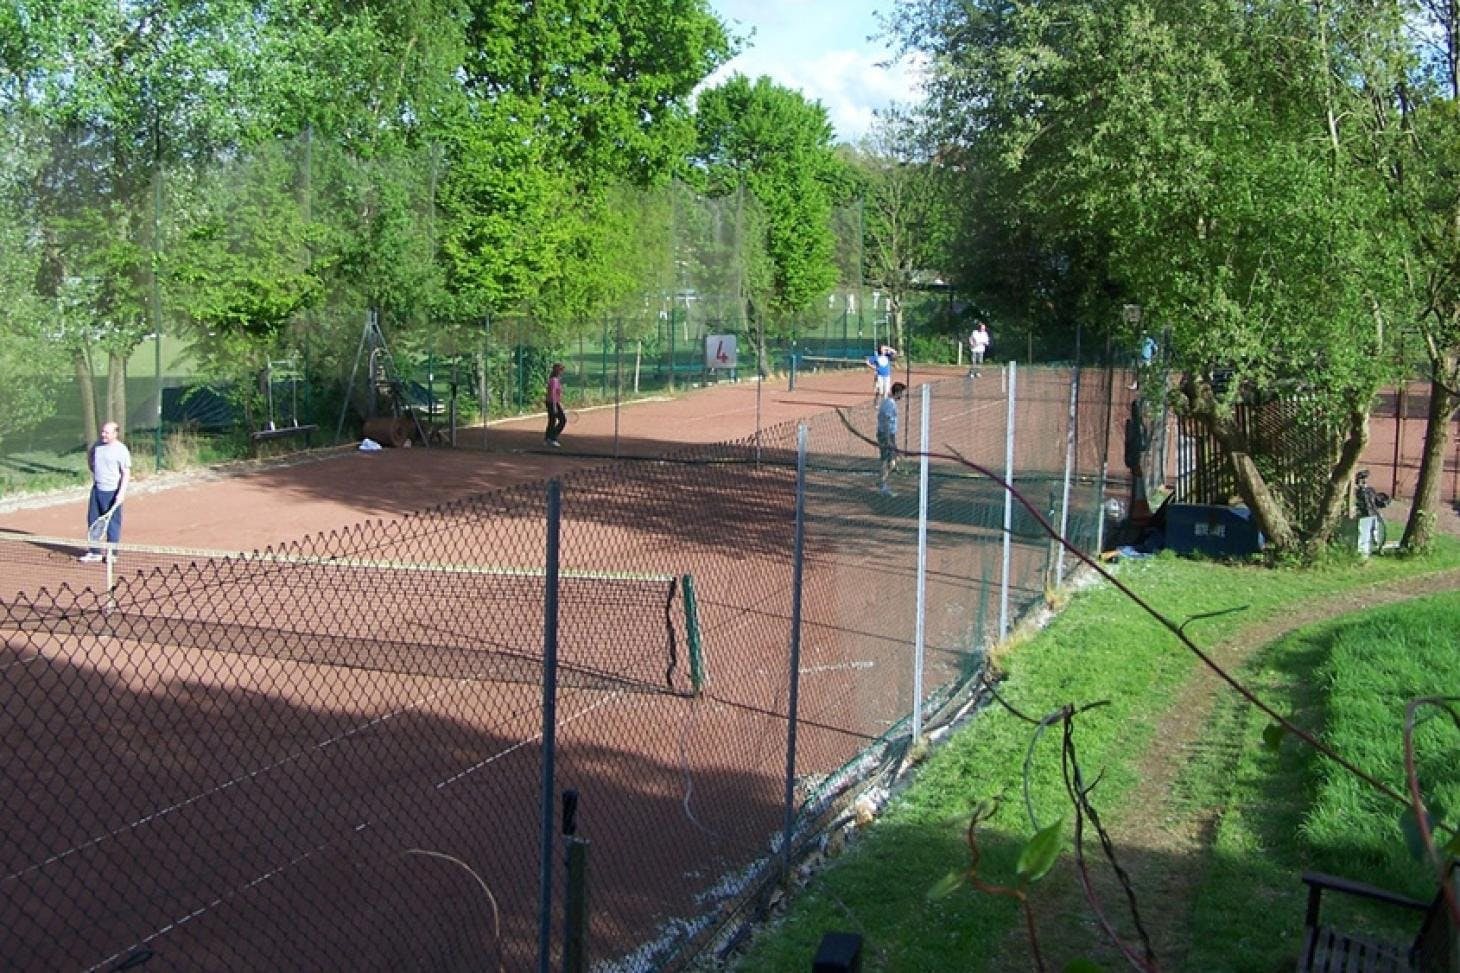 Hanley Lawn Tennis Club Outdoor | Clay tennis court